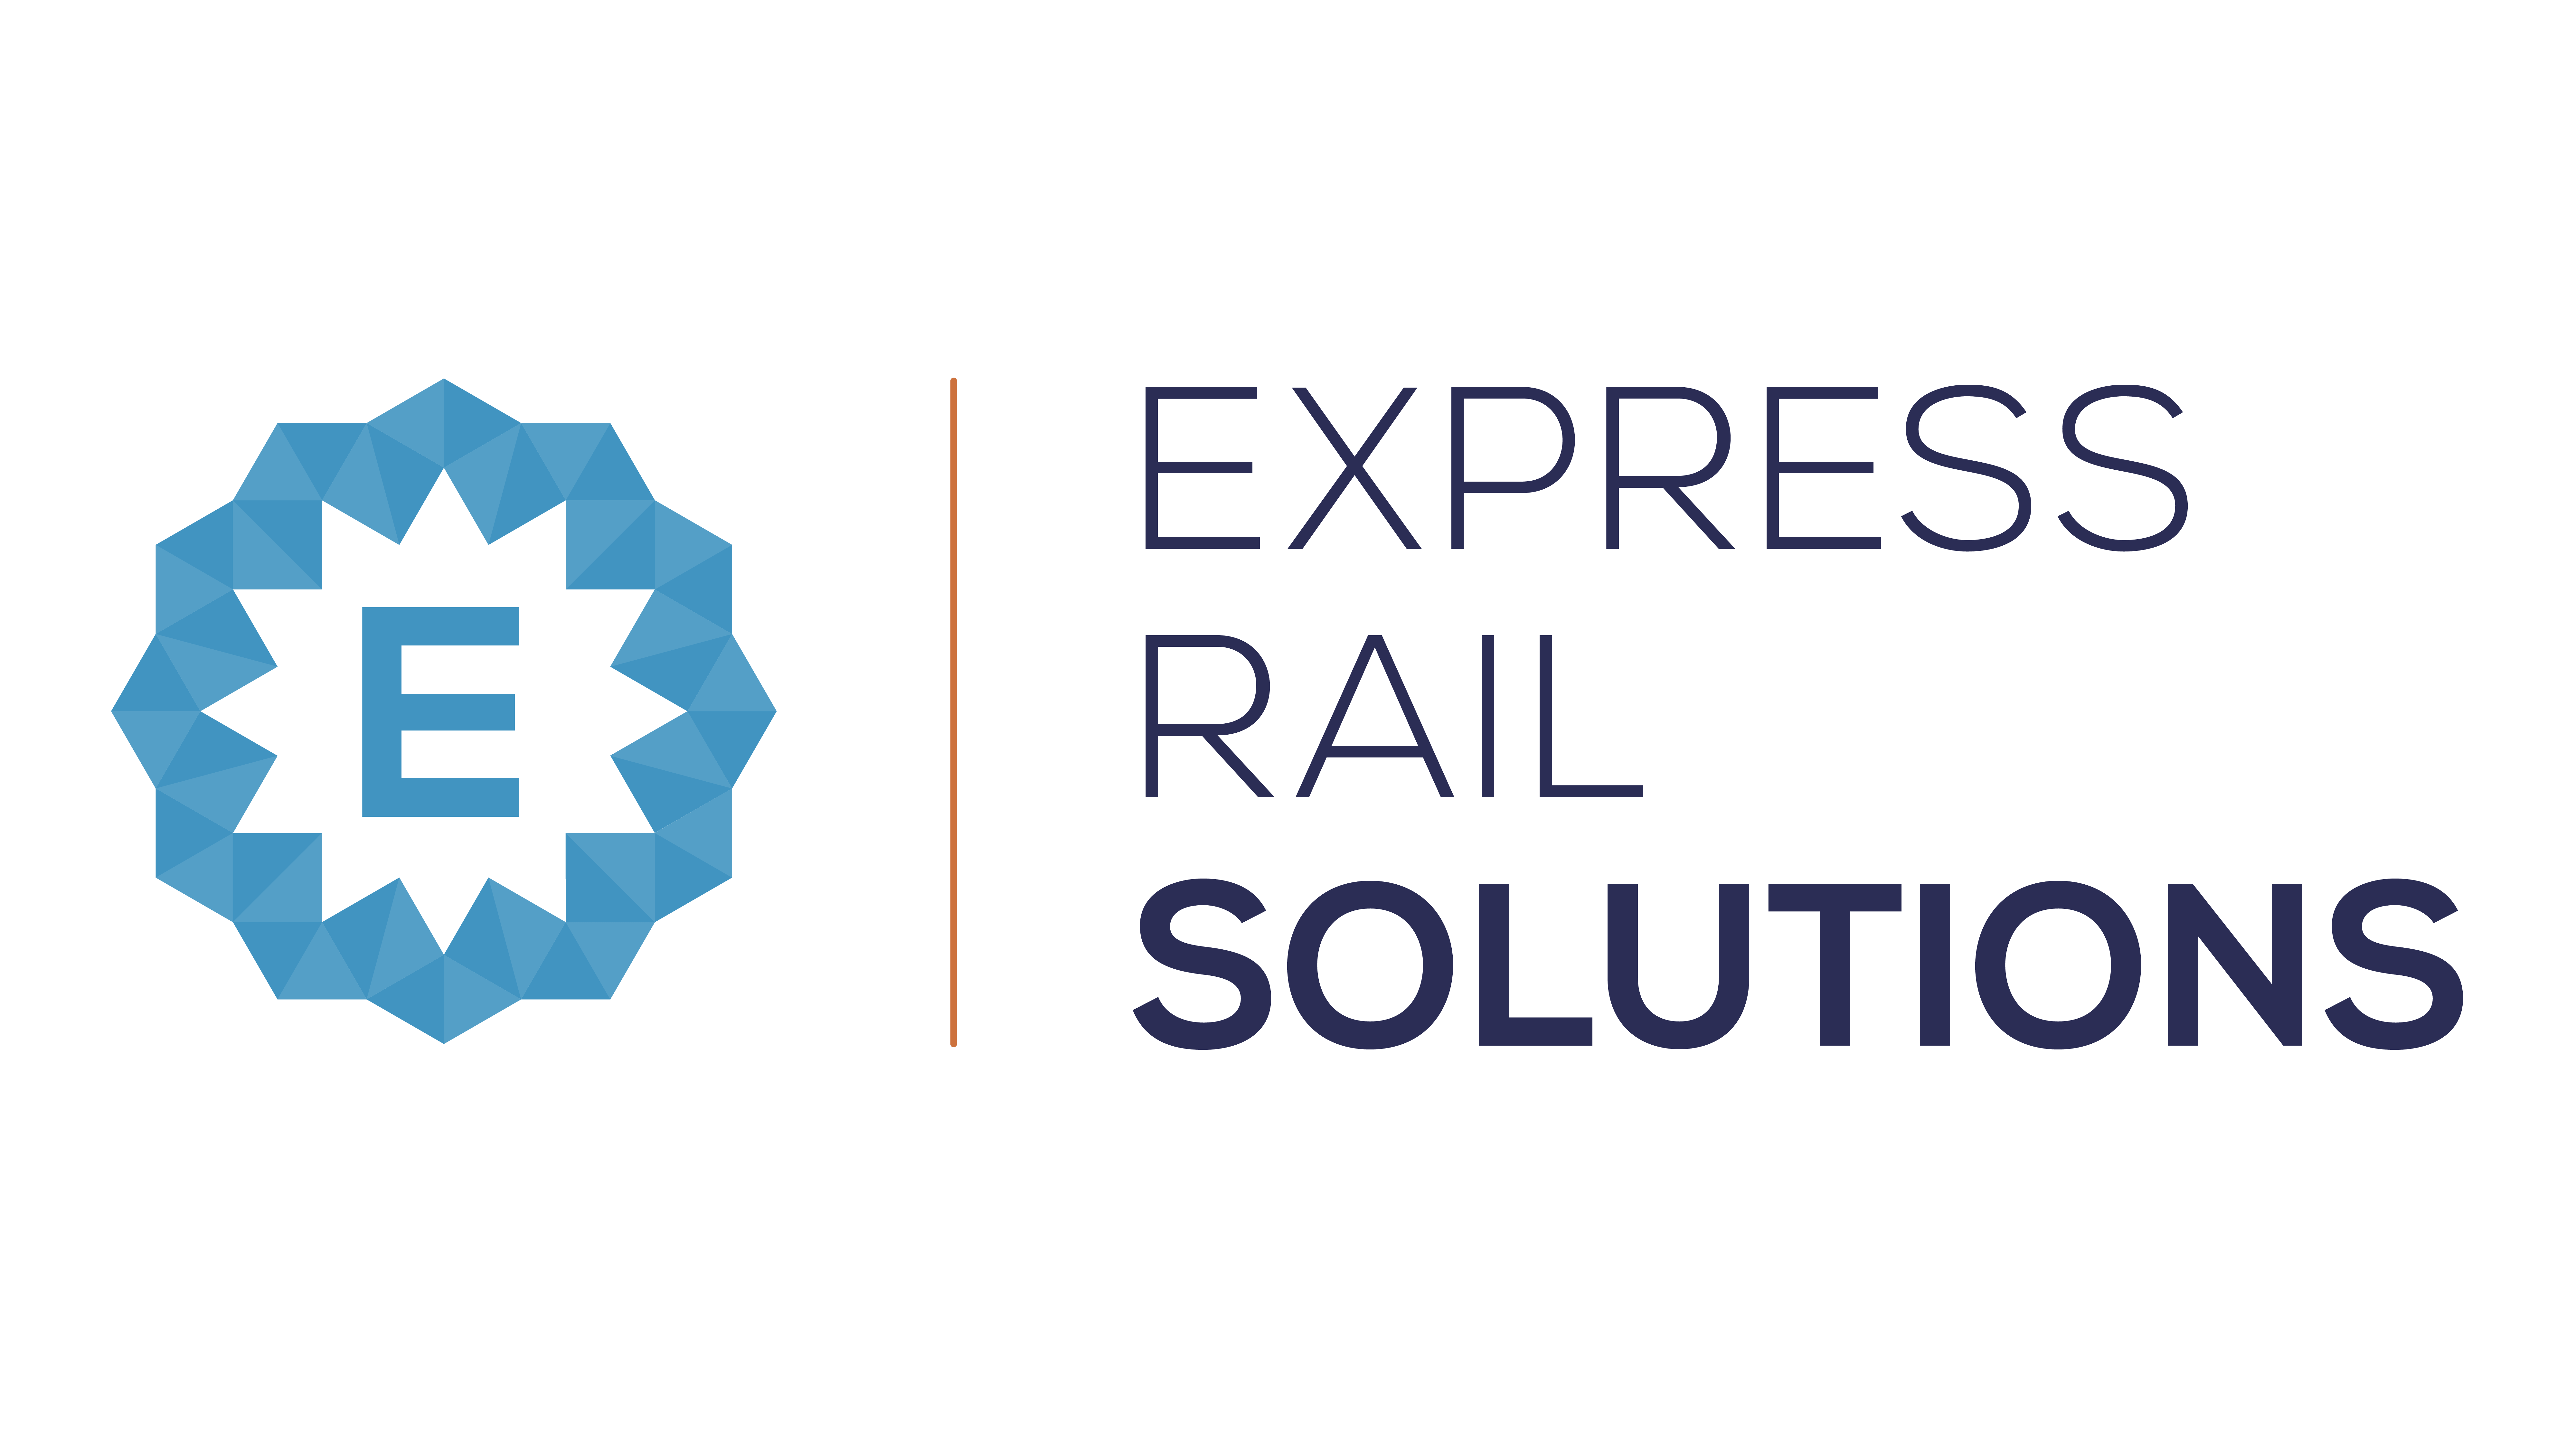 EXPRESS RAIL SOLUTIONS